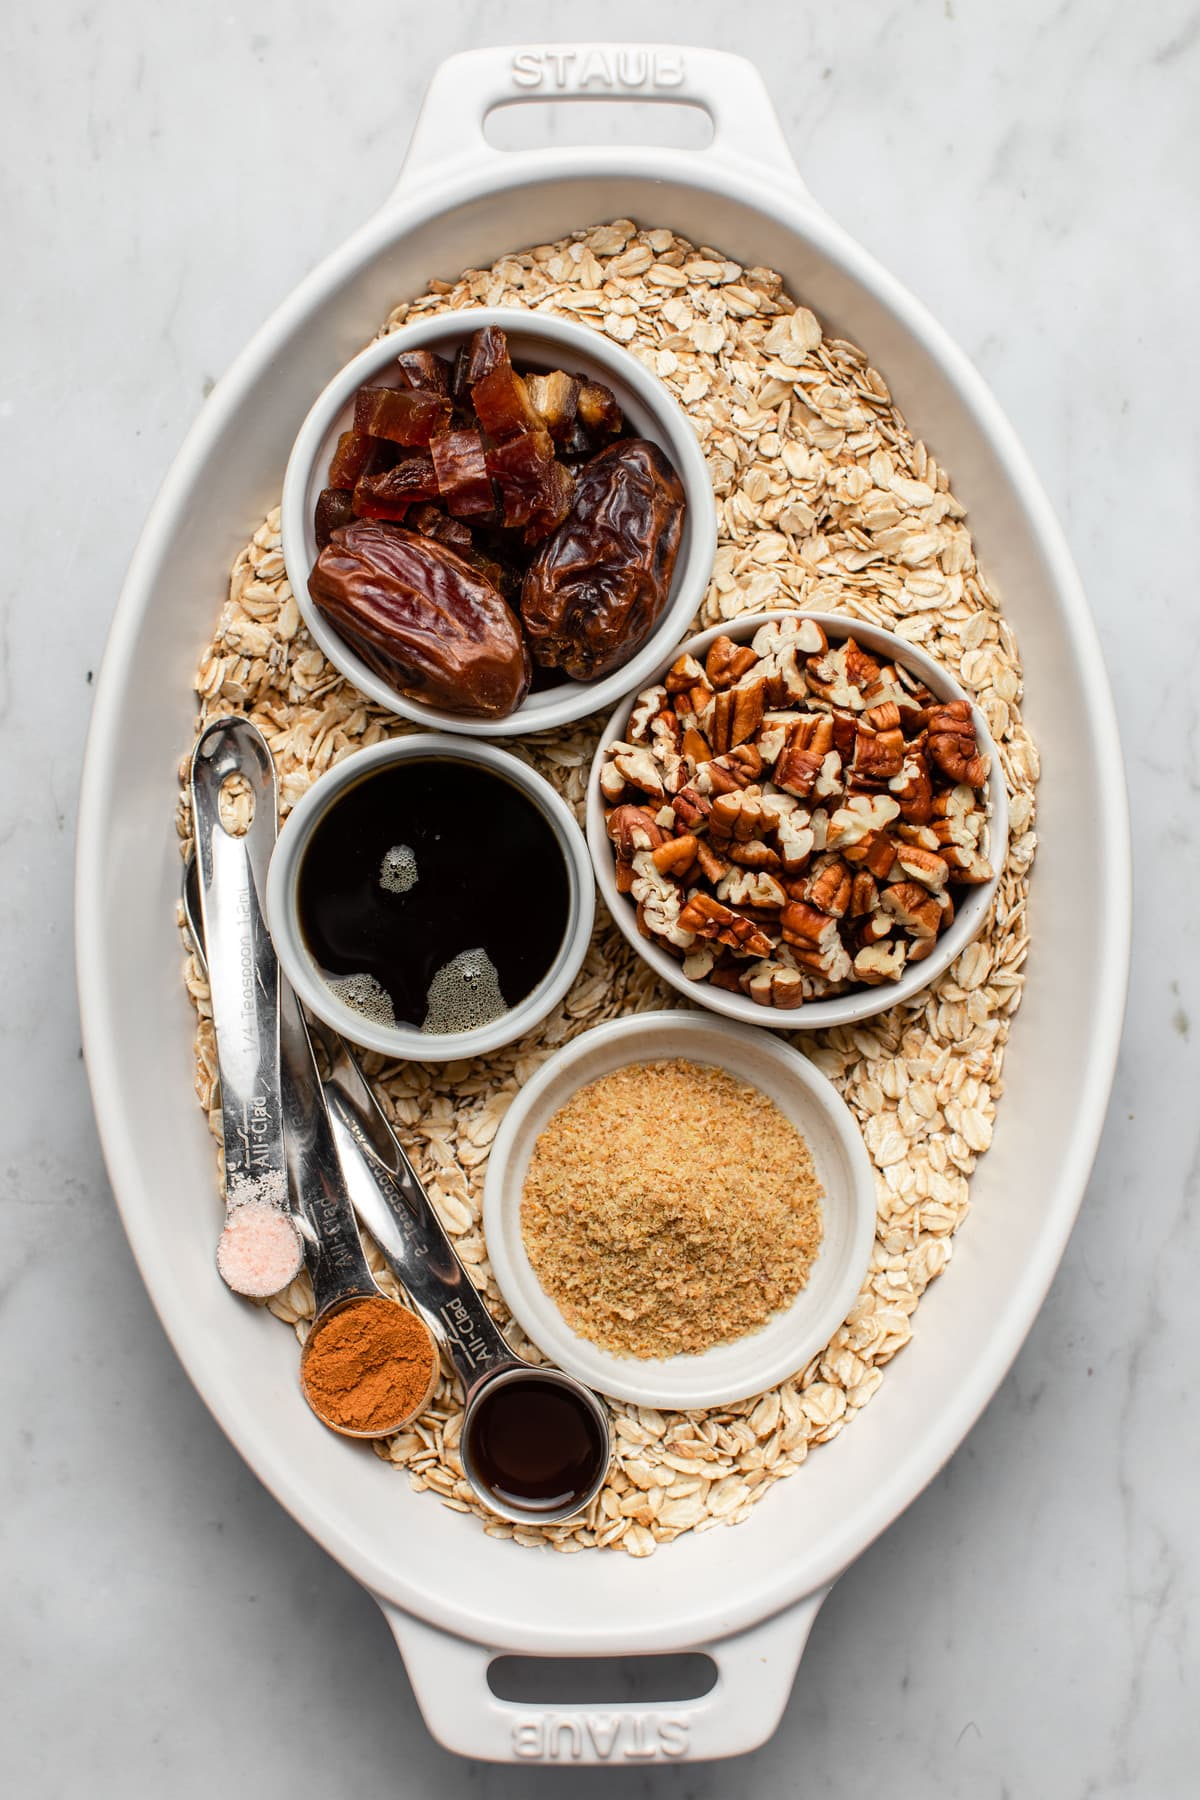 ingredients for maple pecan oatmeal in small white dishes in larger white dish on marble background